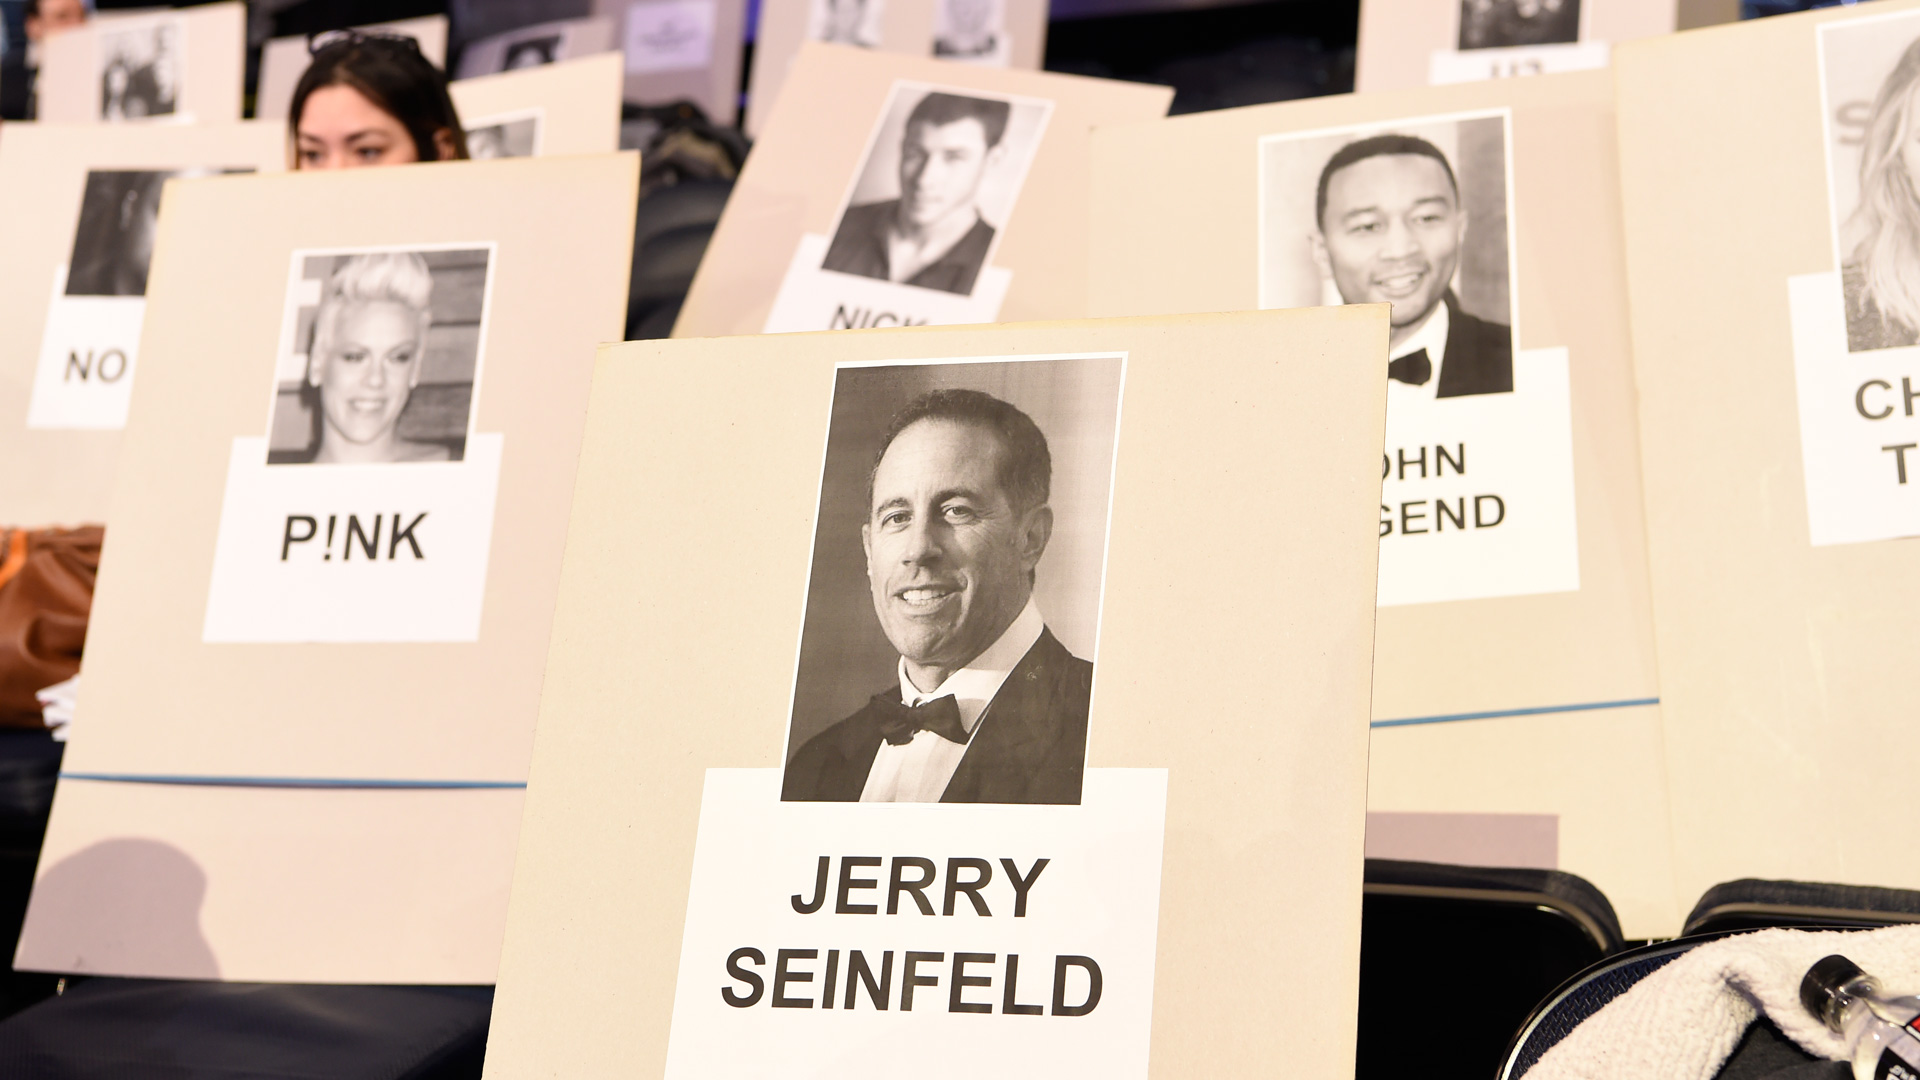 P!nk, who is set to perform this year, will be seated right behind comedian/actor Jerry Seinfeld.